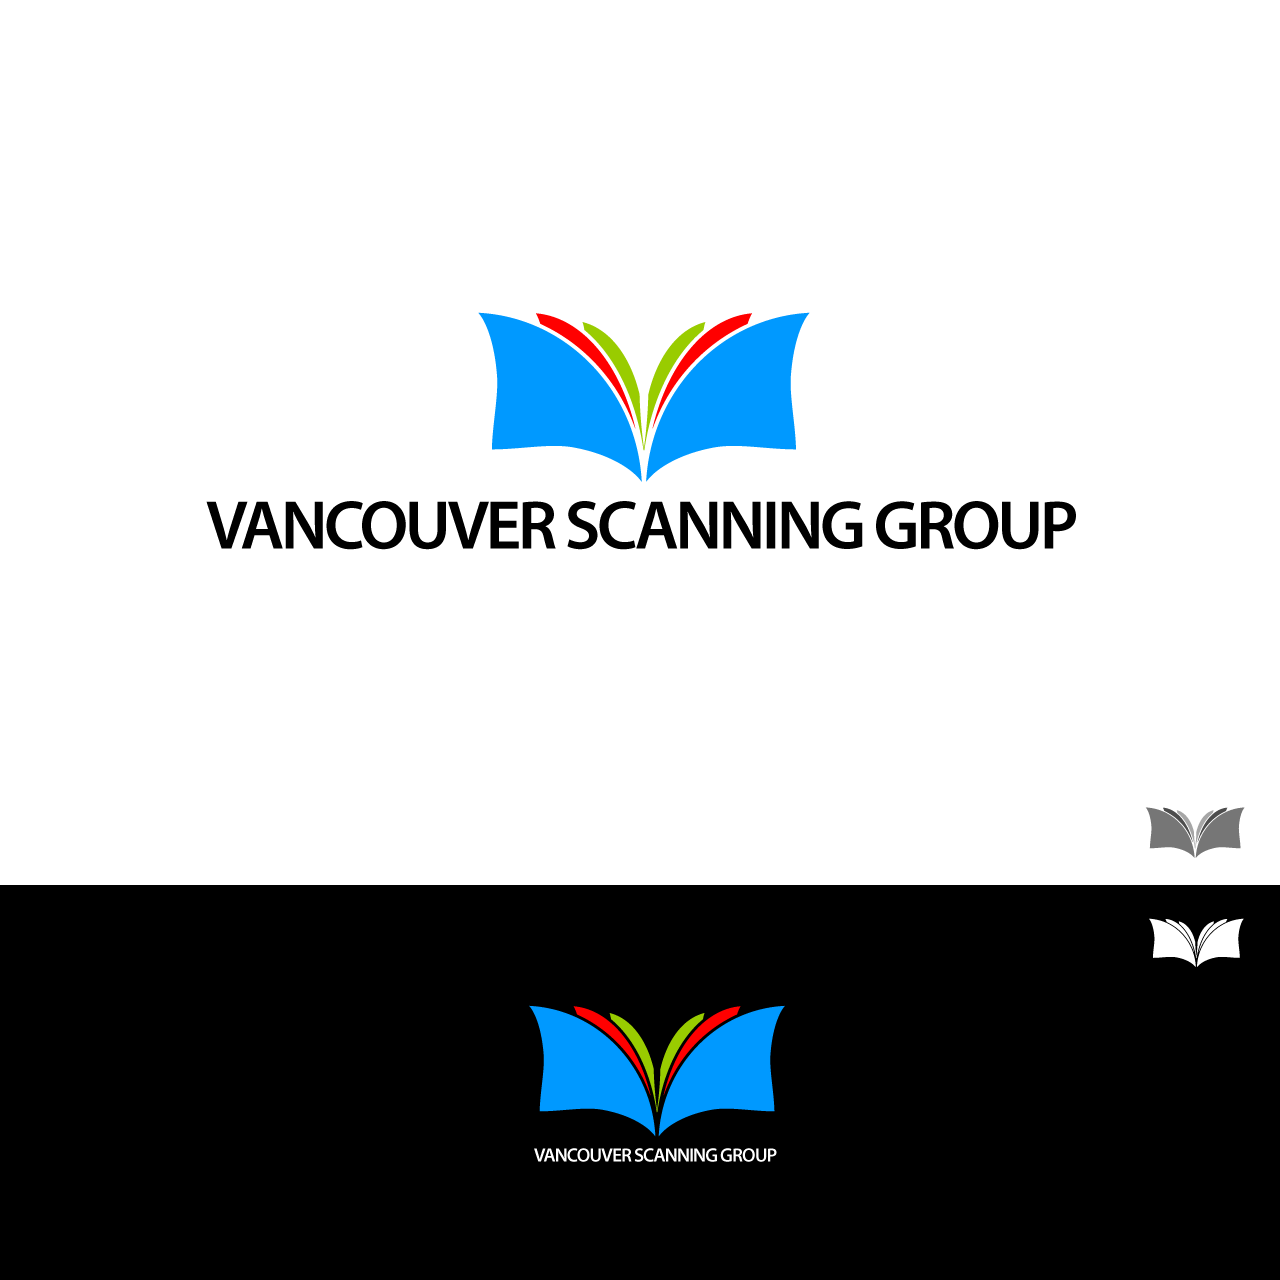 Logo Design by umxca - Entry No. 14 in the Logo Design Contest Vancouver Scanning Group.